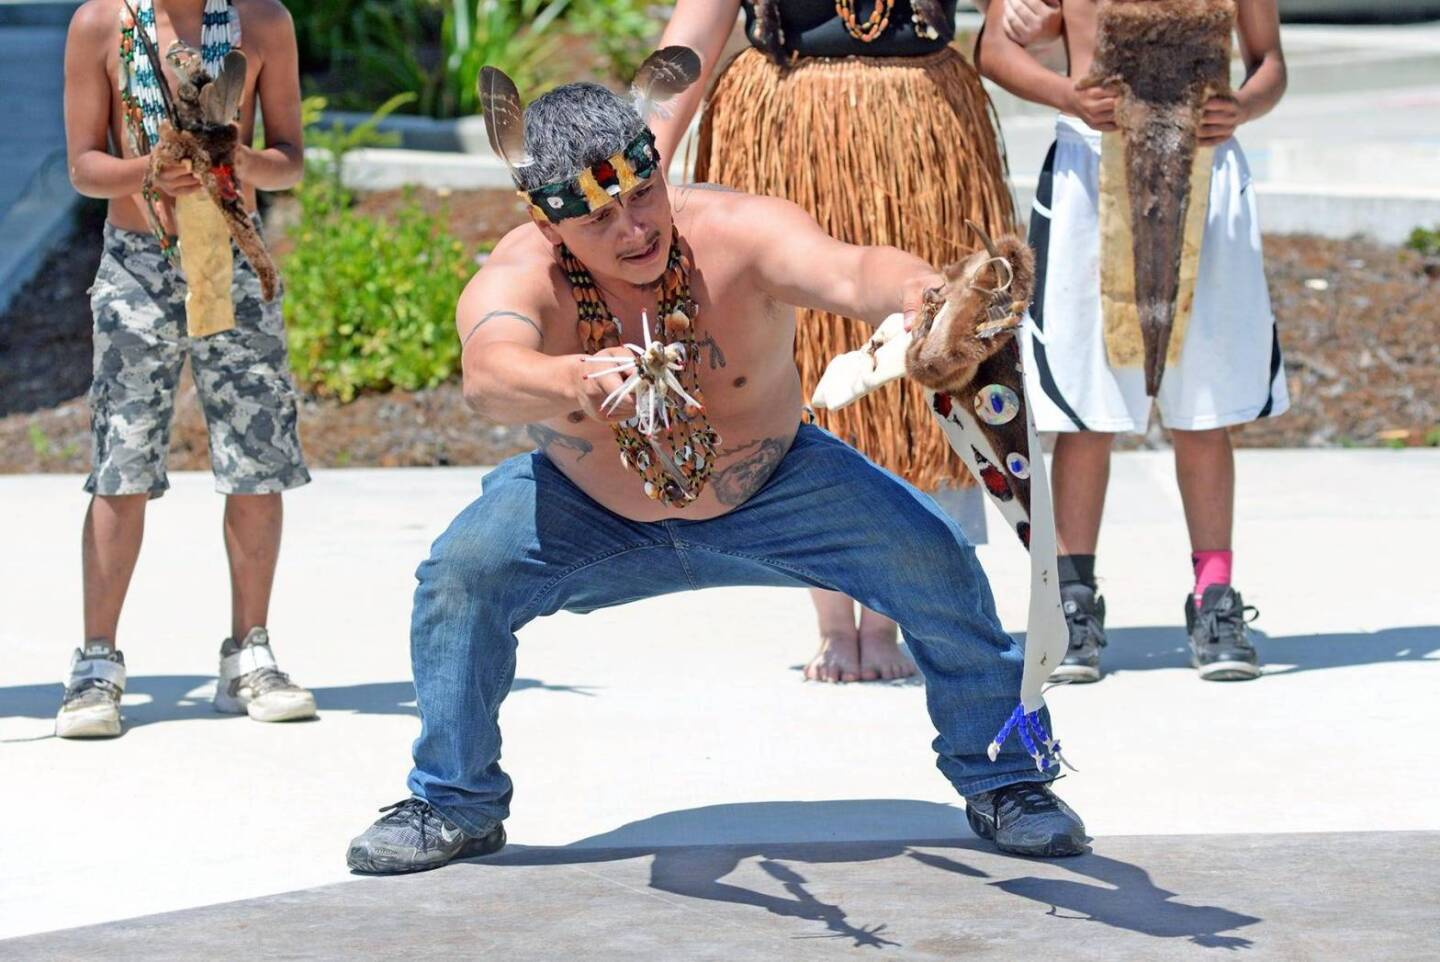 A shirtless man in jeans and sneakers wears Indigenous Yurok decorations like a necklace and headband as he performs a Brush Dance demonstration outdoors.